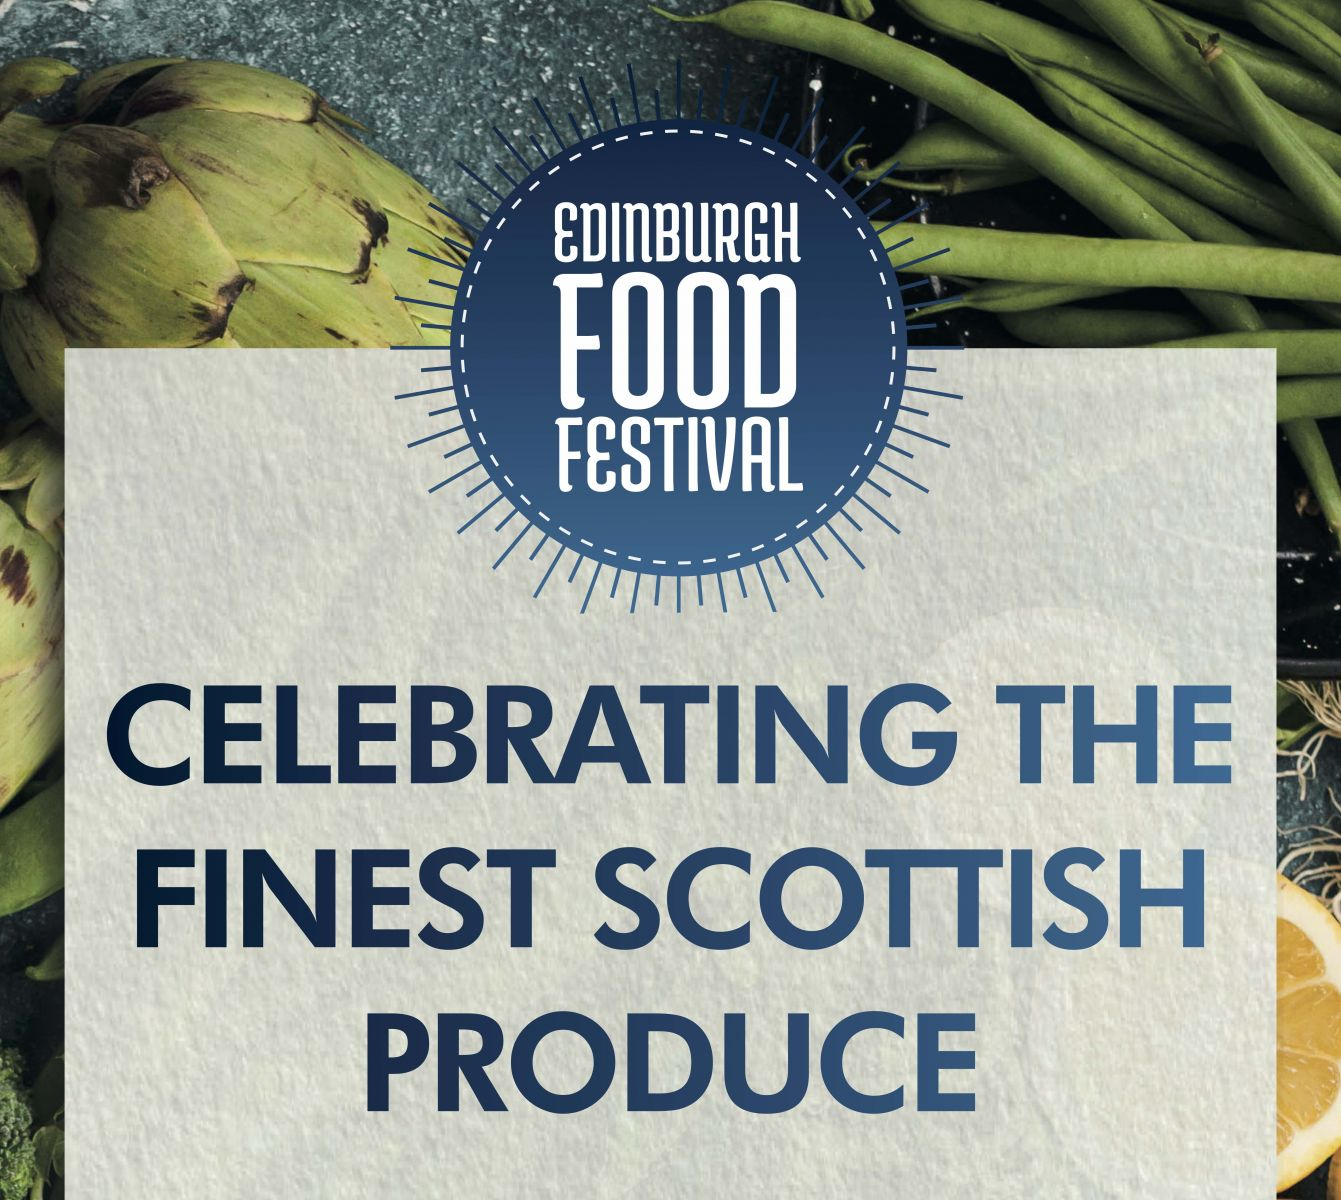 Our 2020 Edinburgh Food Festival plans